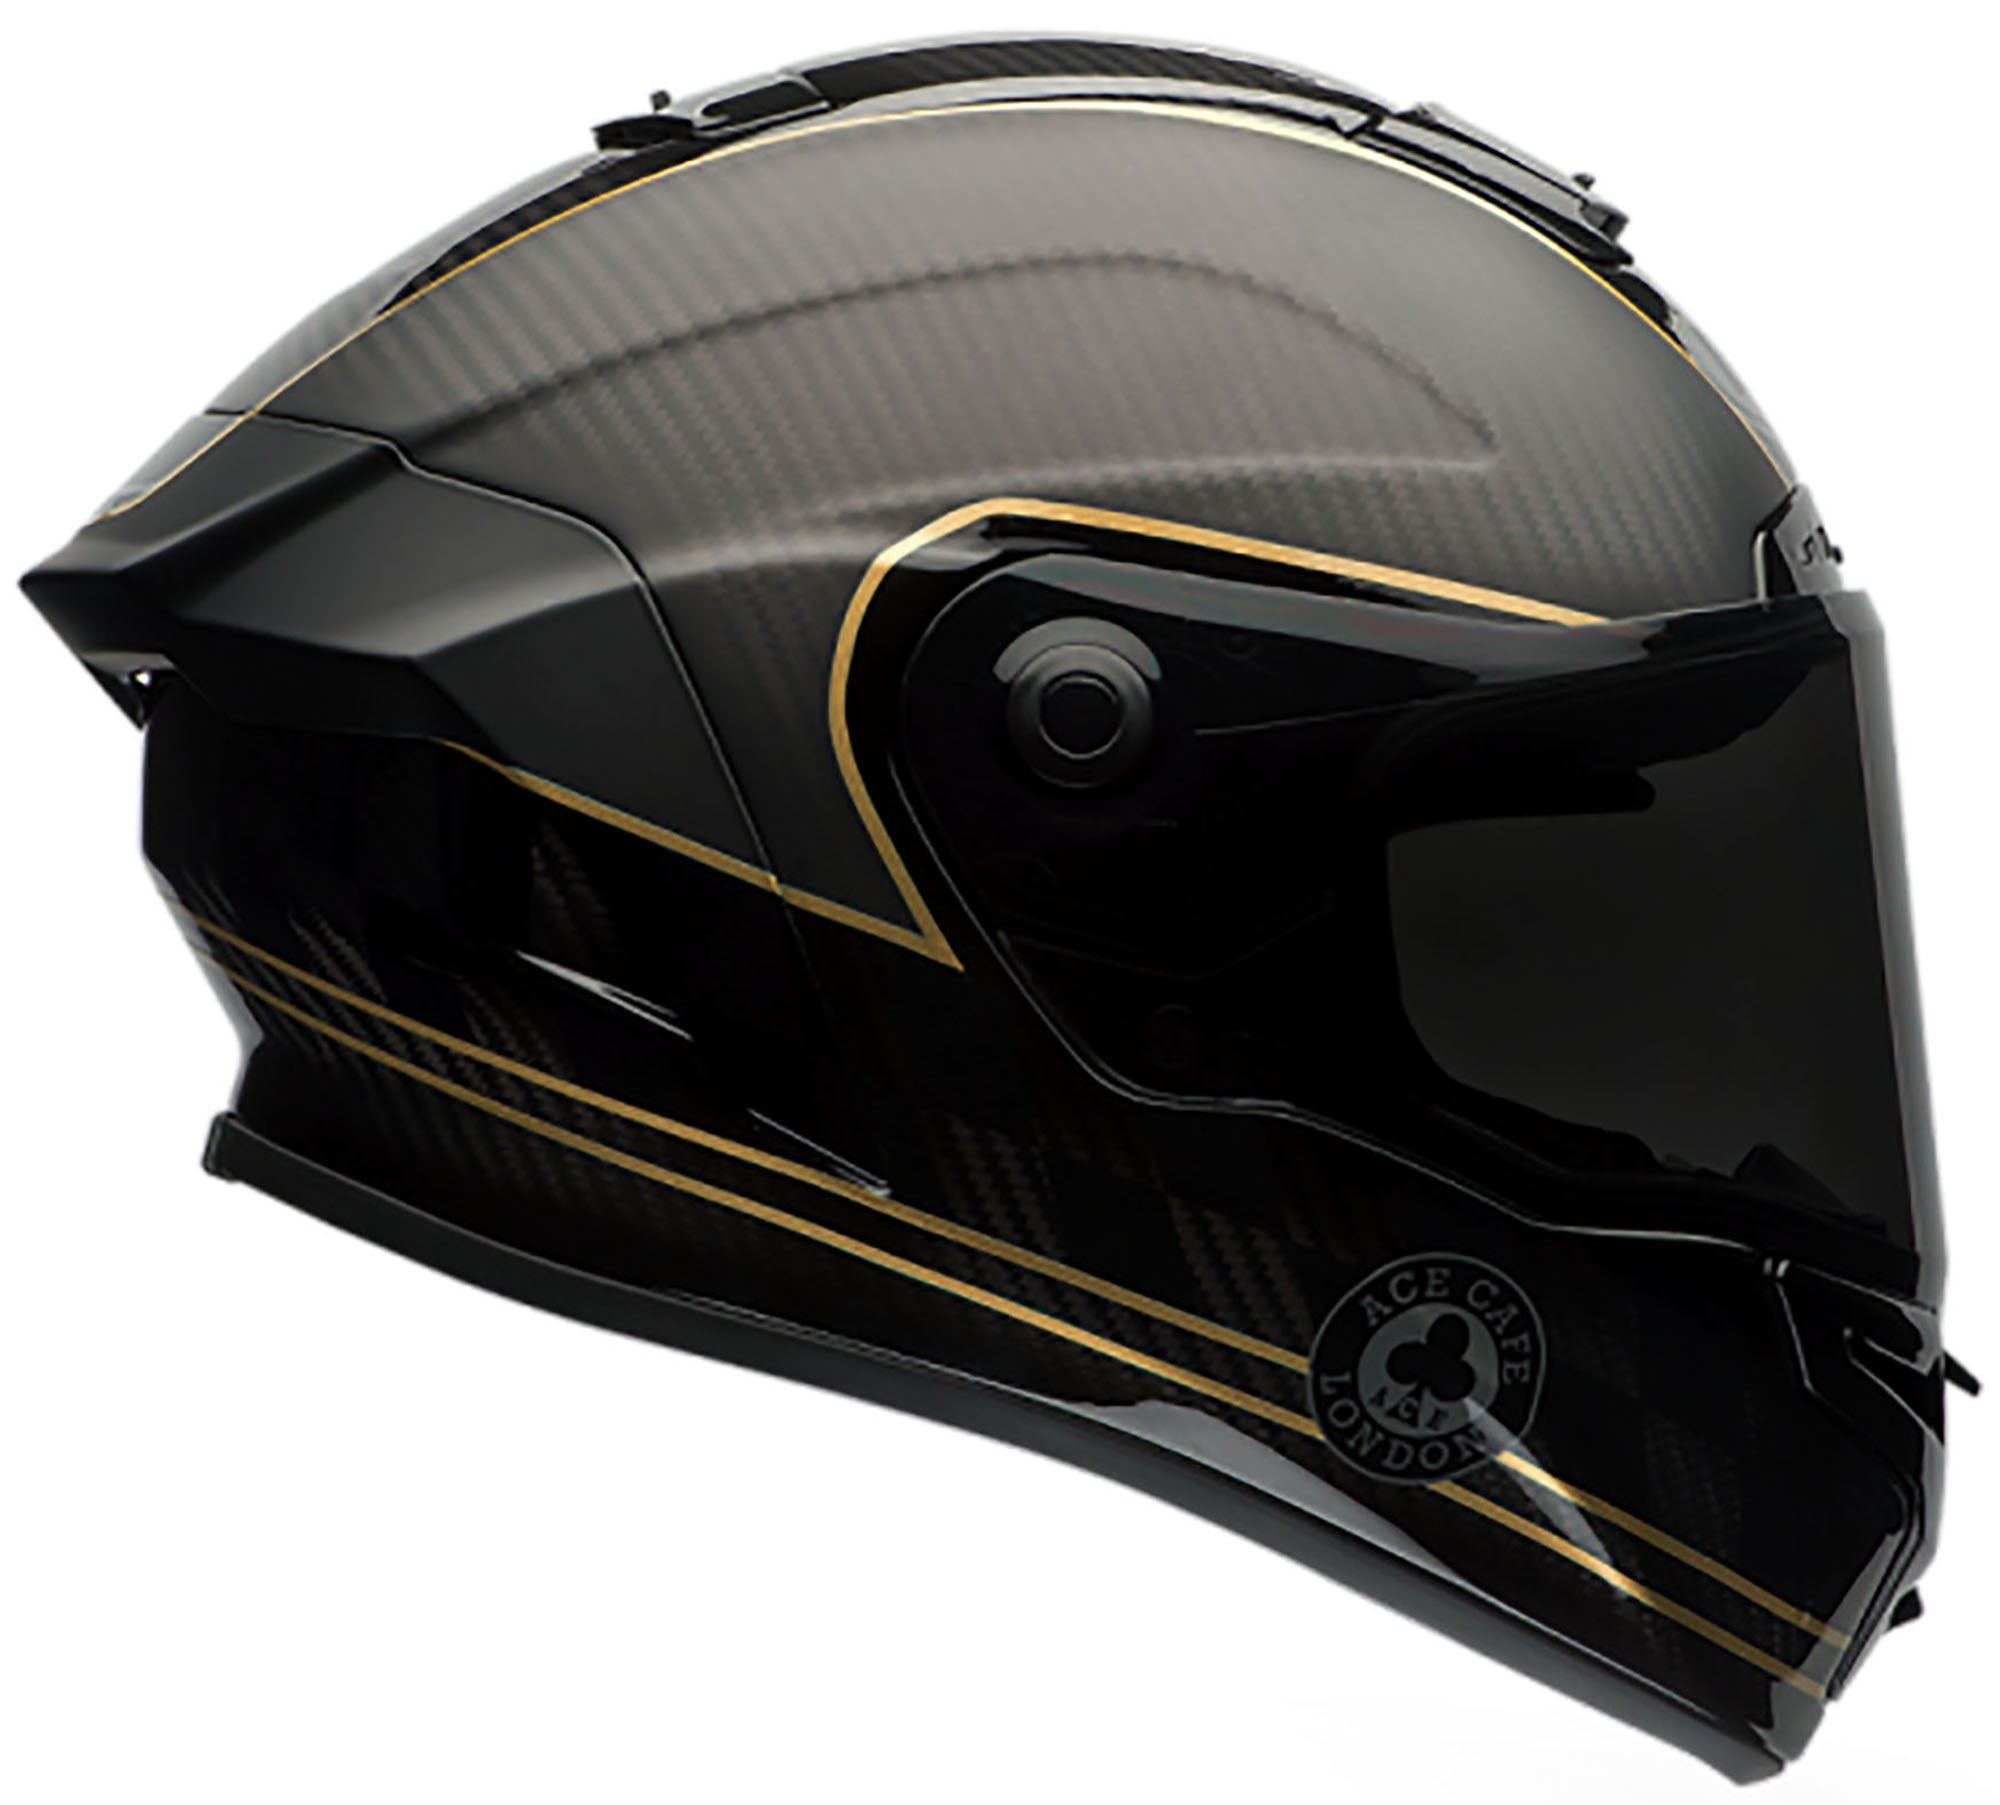 3c91653d Galleon - Bell Race Star Full-Face Motorcycle Helmet (Ace Cafe Speed Check  Matte Black/Gold, Small)